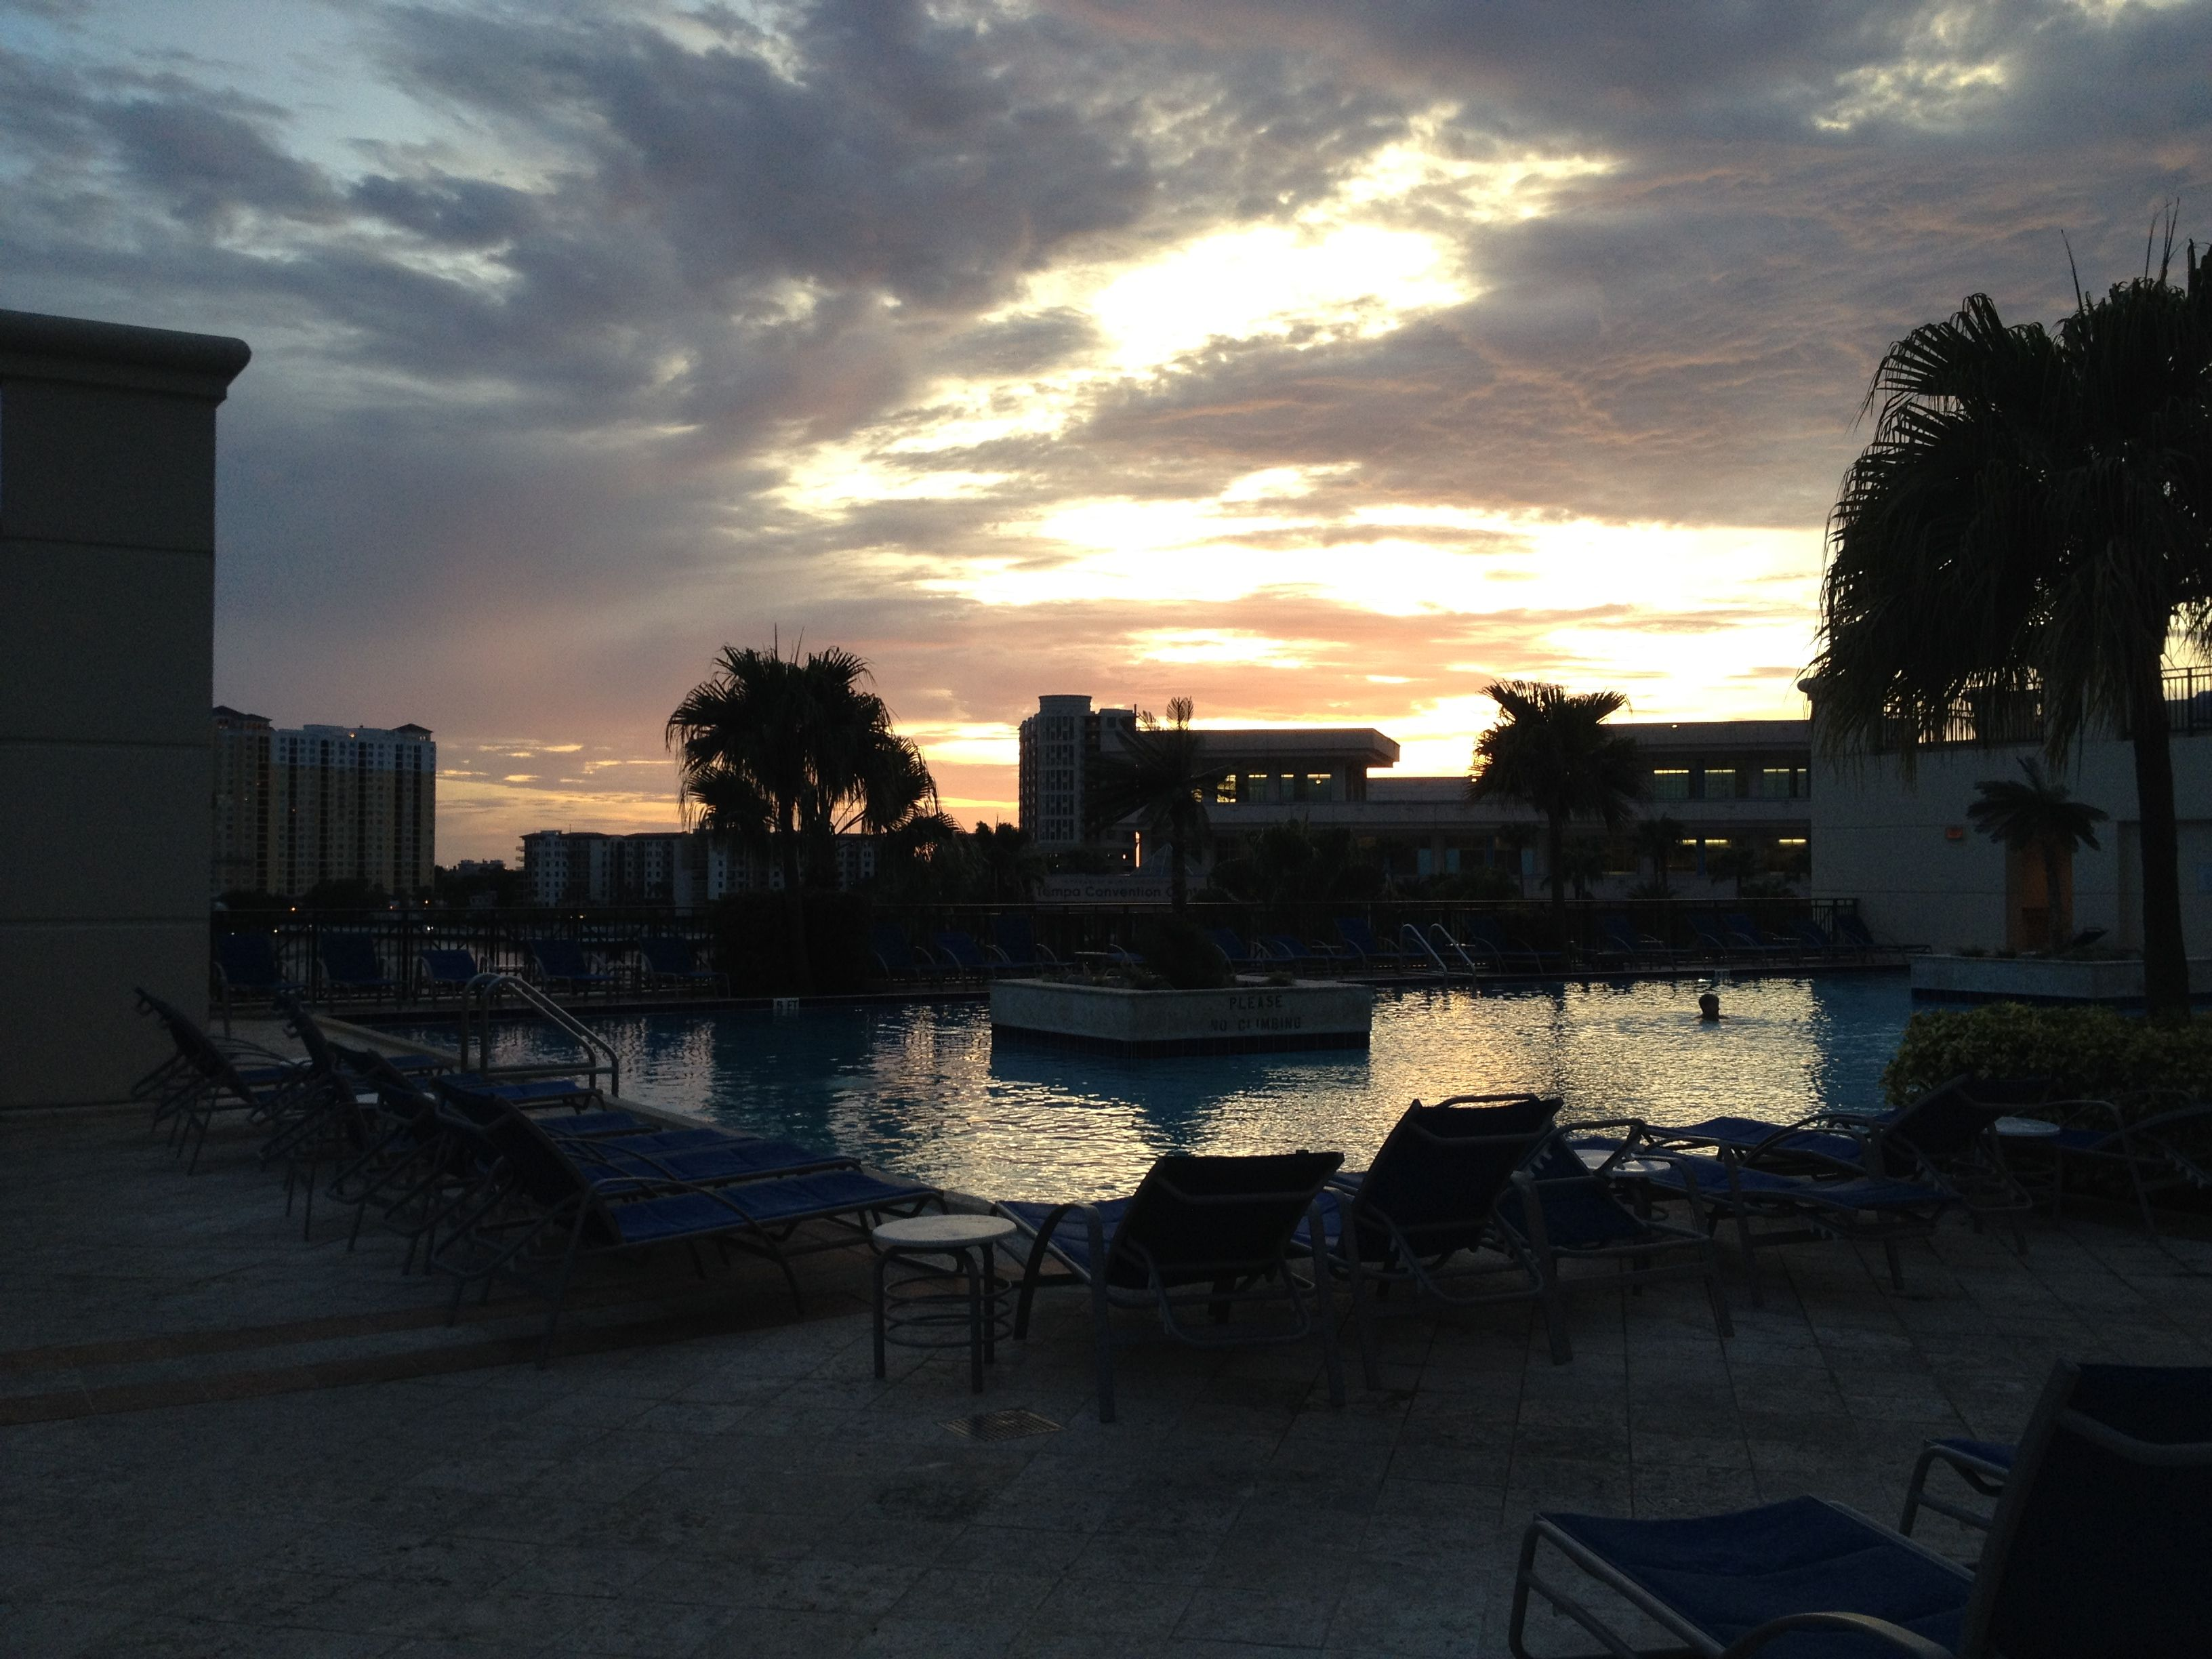 Tampa, Florida, 2014 - Sunset over the pool at the Marriott Waterside